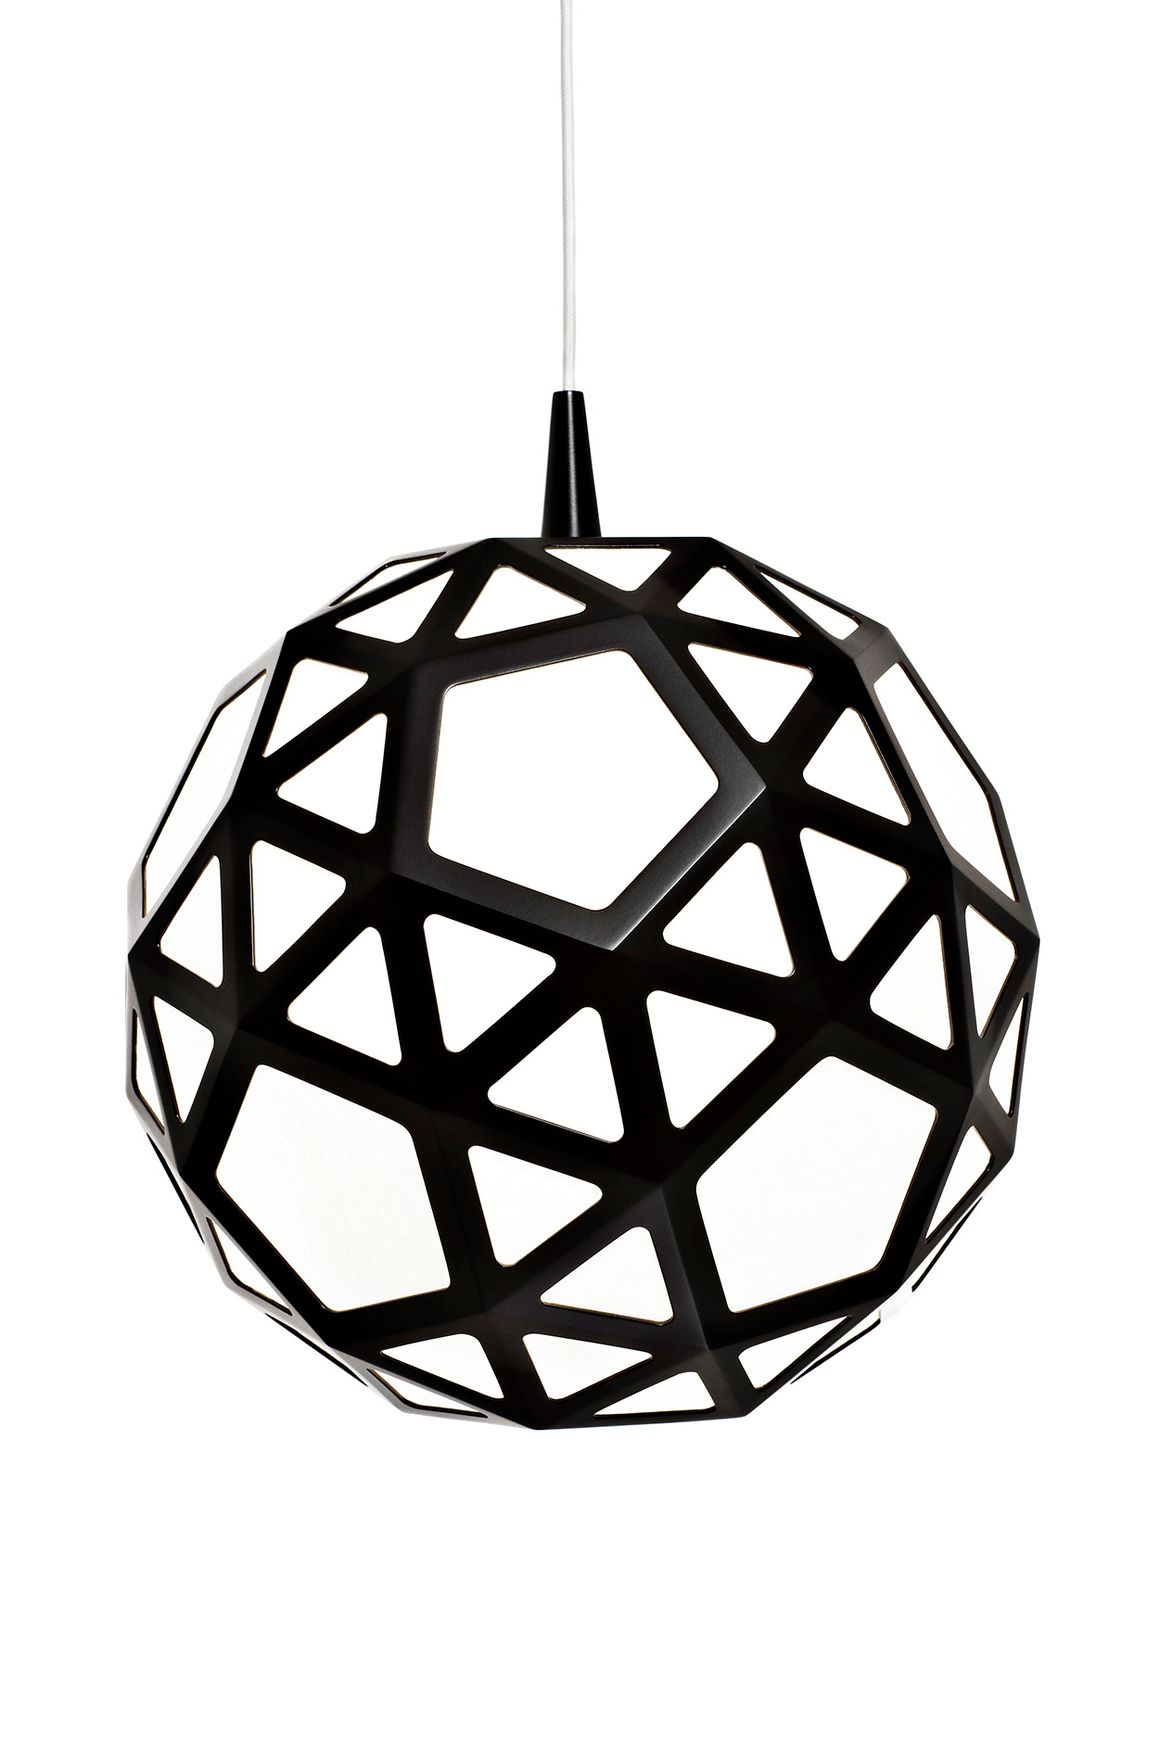 Rasmus Fenhann Furniture designer design art lamp